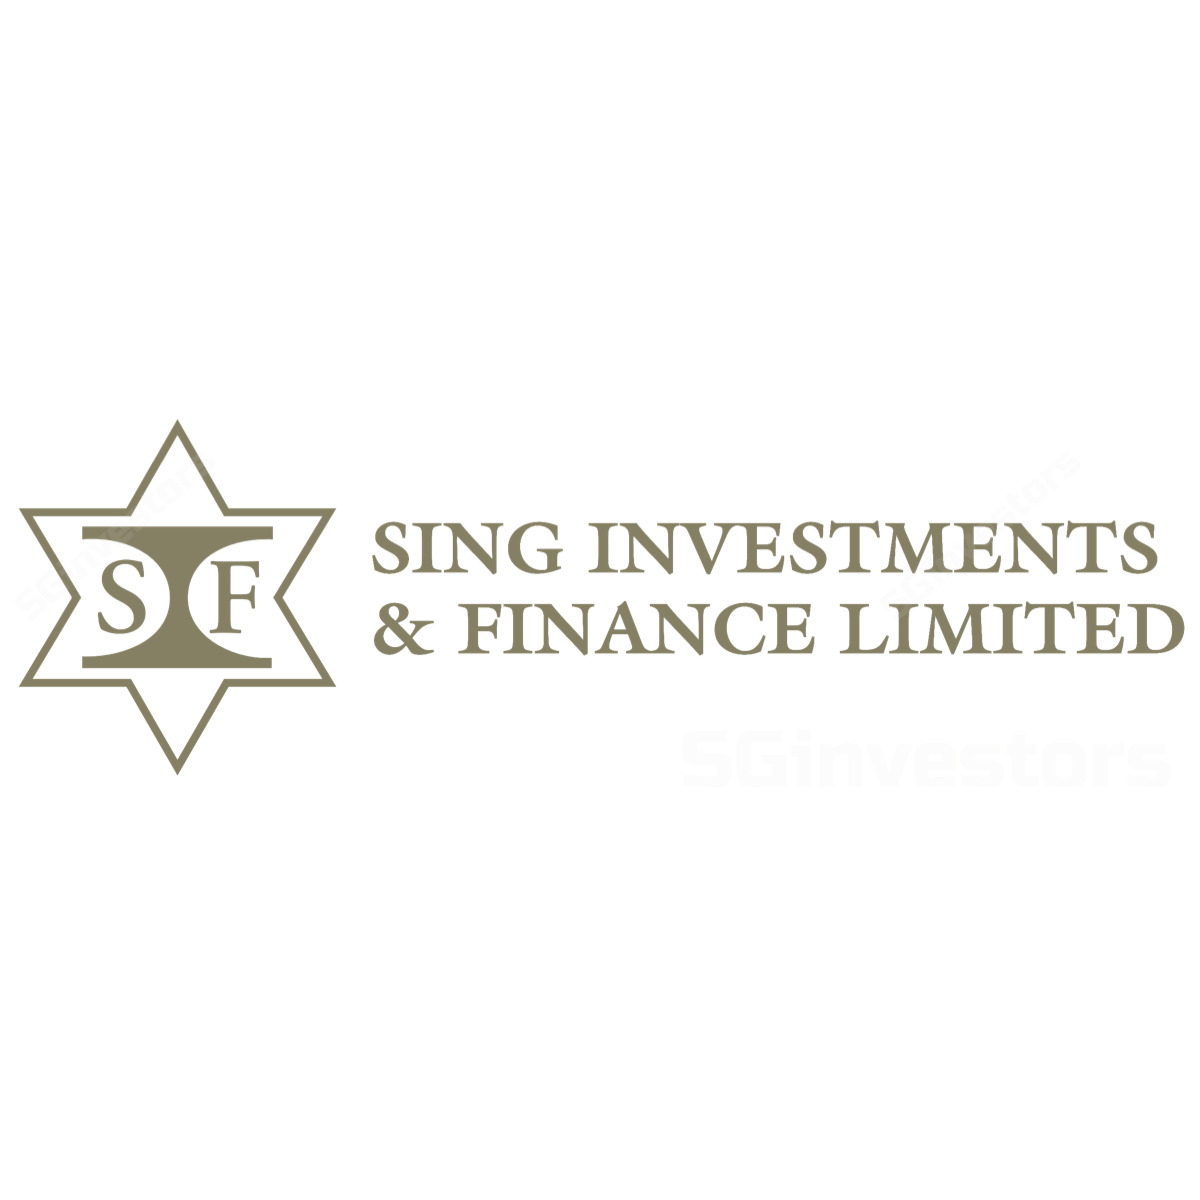 Sing Investments & Finance Limited - Phillip Securities 2017-08-03: On Track For A Stellar Year